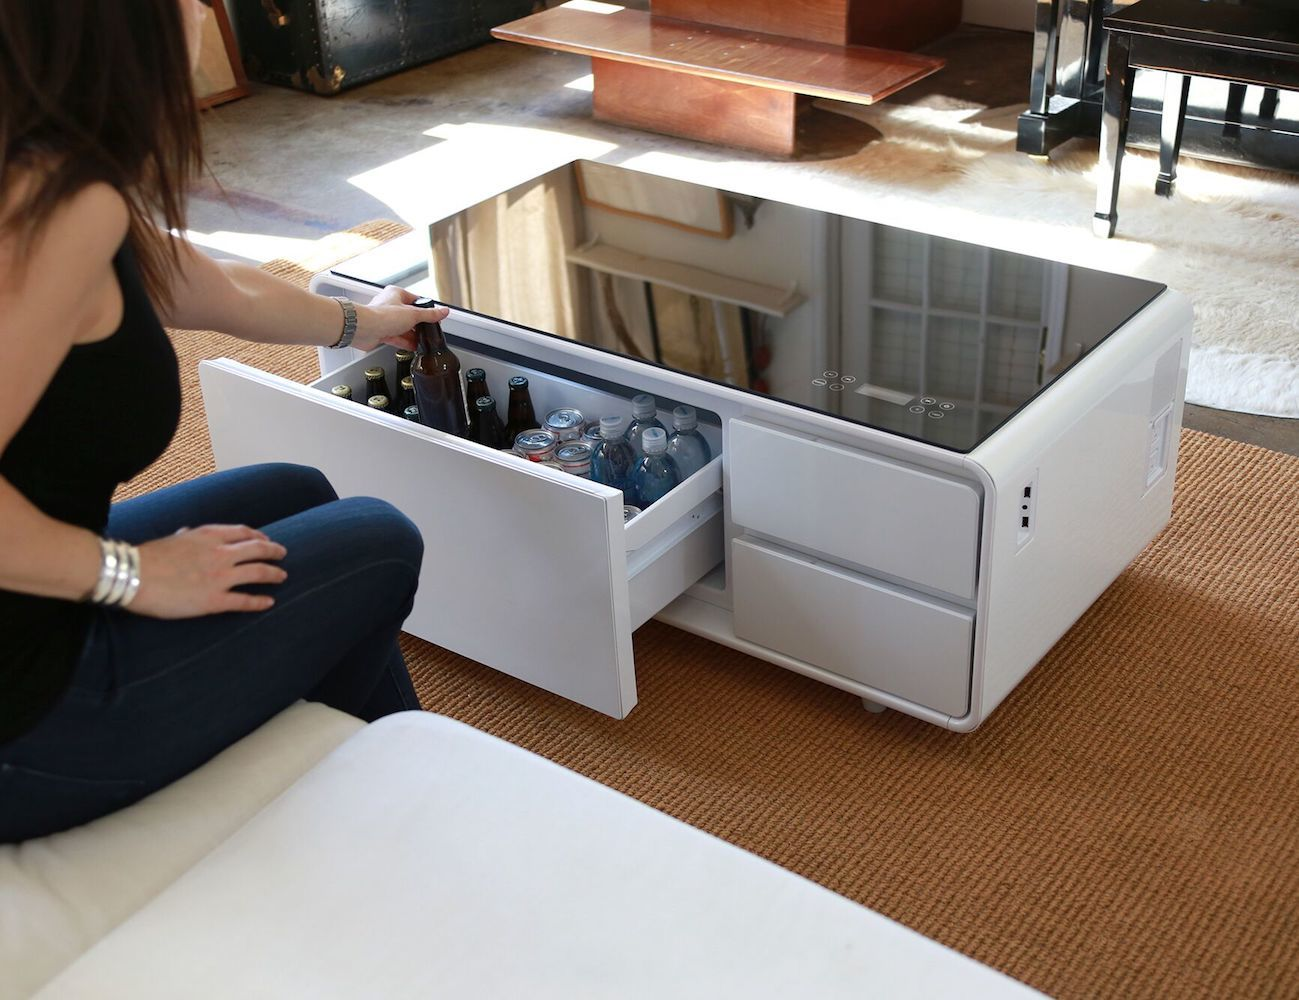 Coffee Table With Cooler Sobro Cooler Coffee Table 187 Gadget Flow